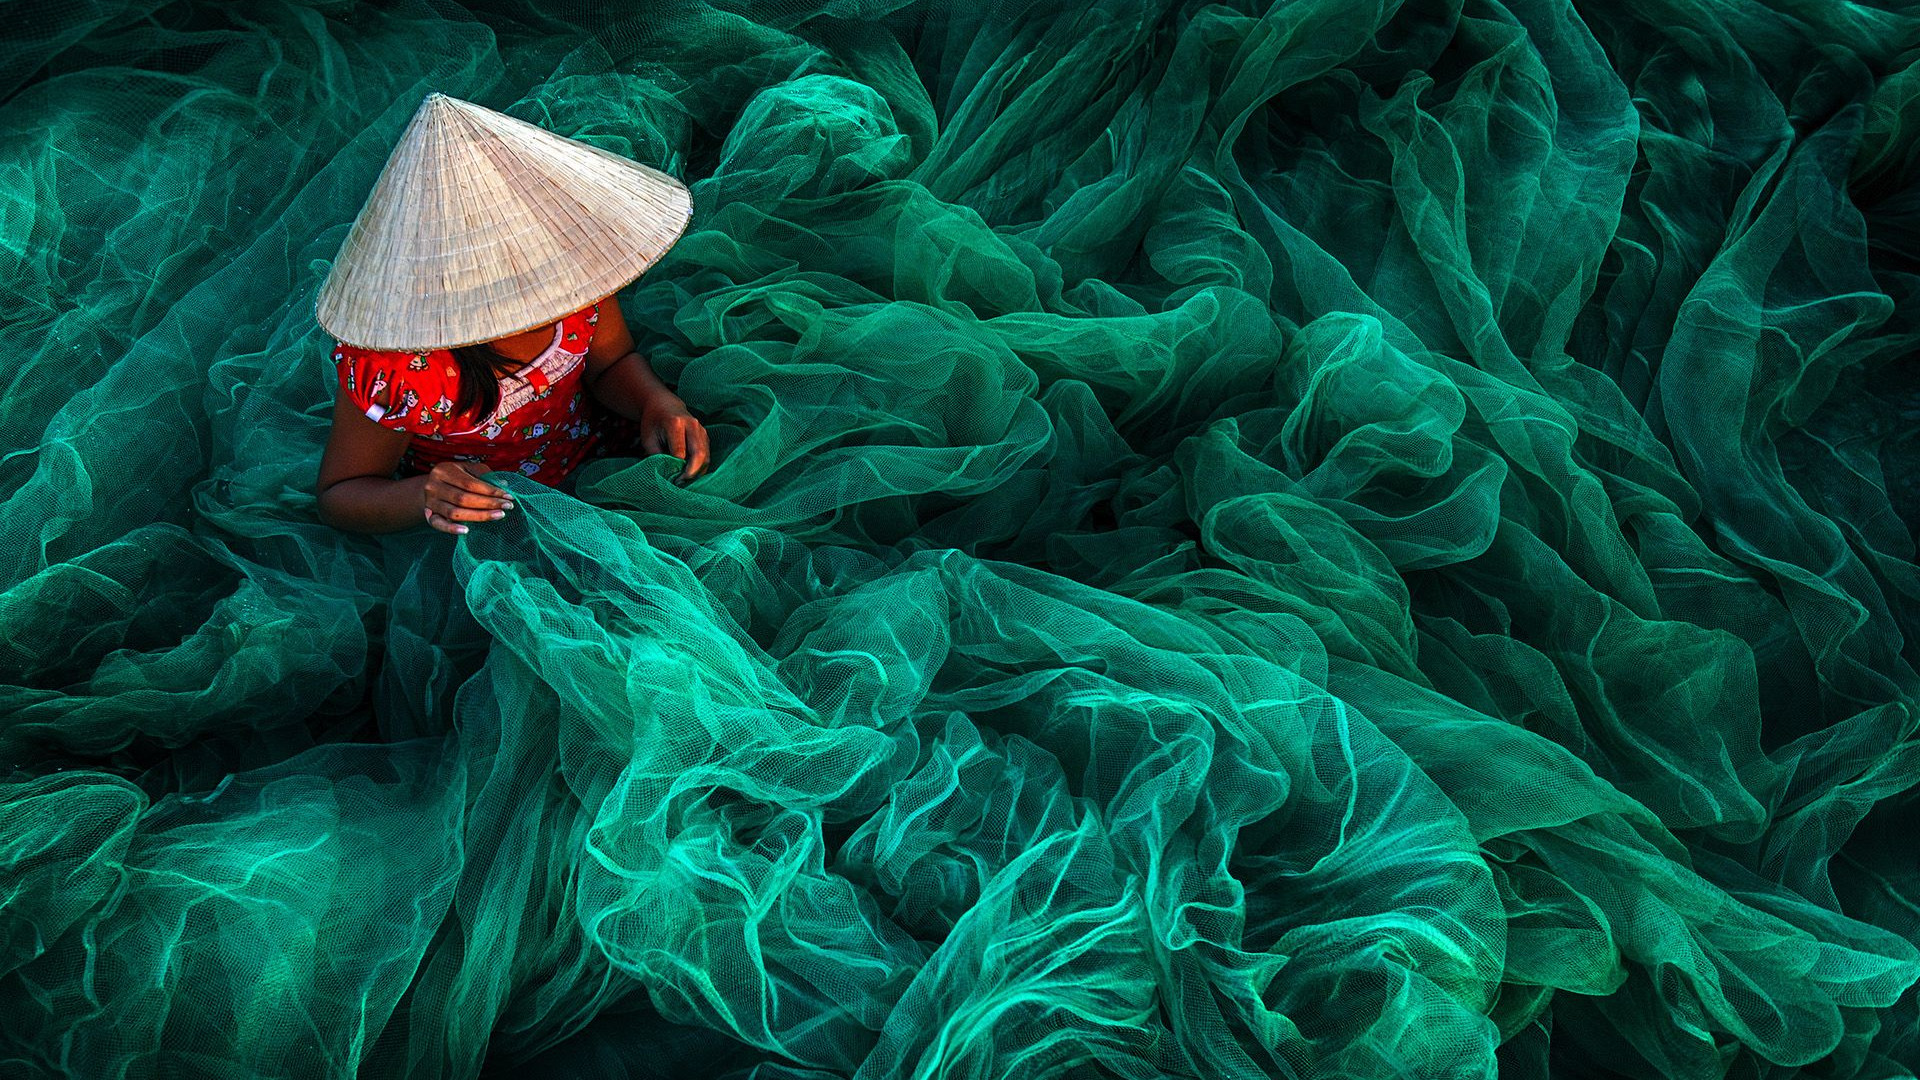 Vietnamese woman weaving a handmade fishing net